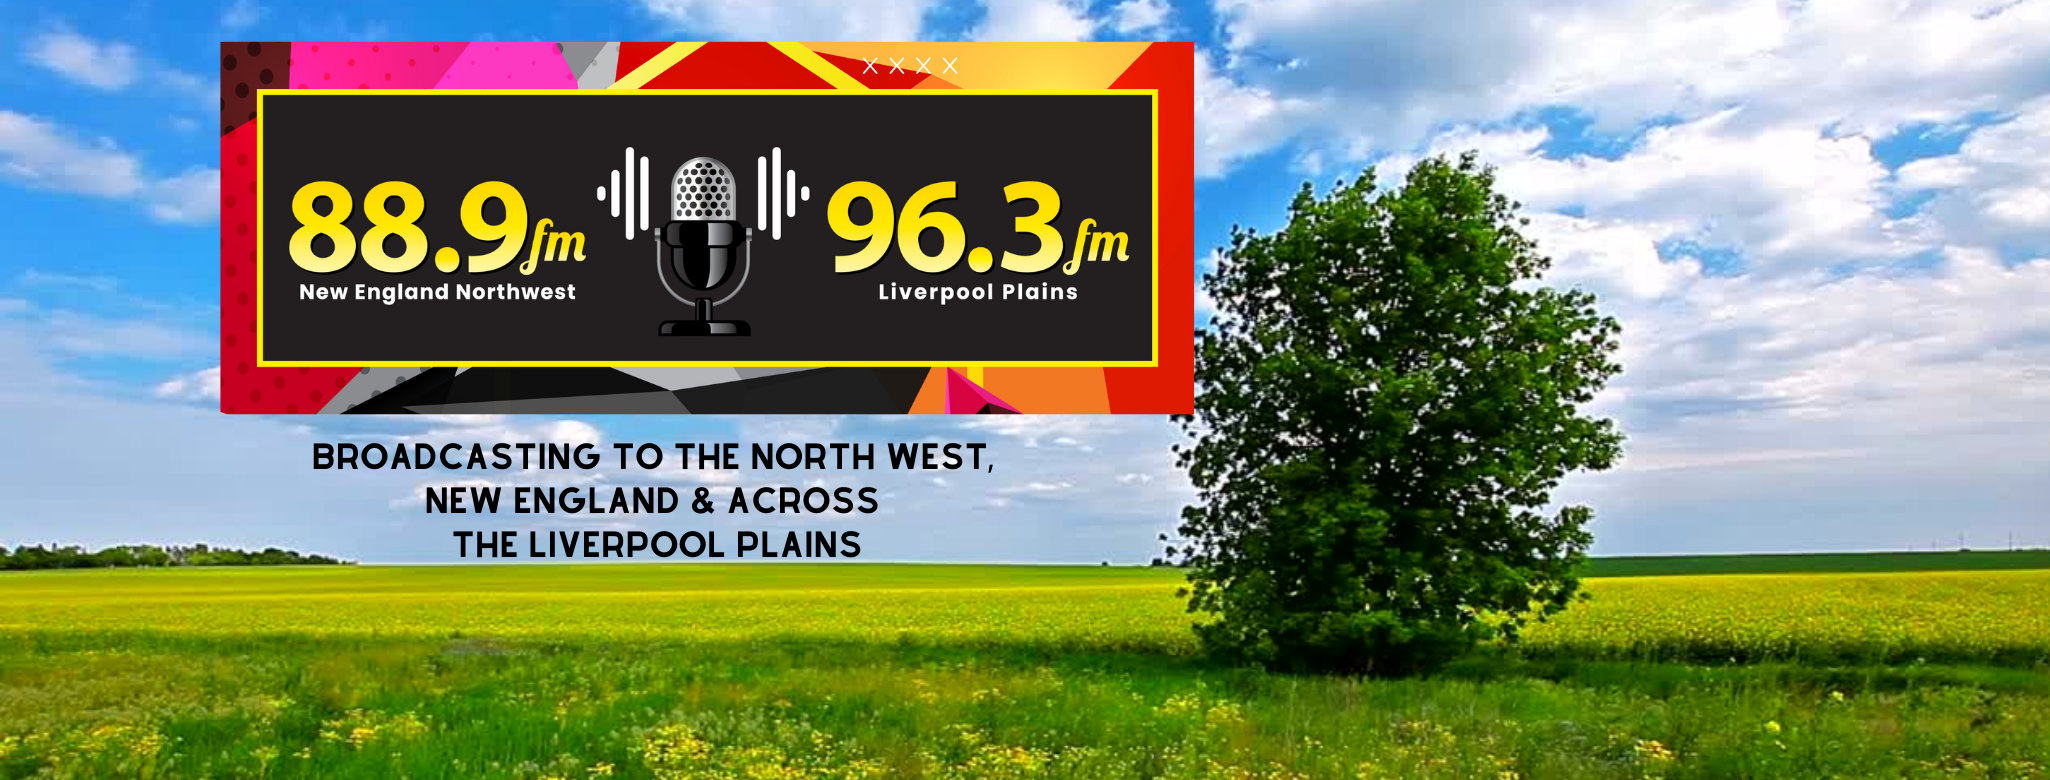 BROADCASTING TO THE NORTH WEST, NEW ENGL